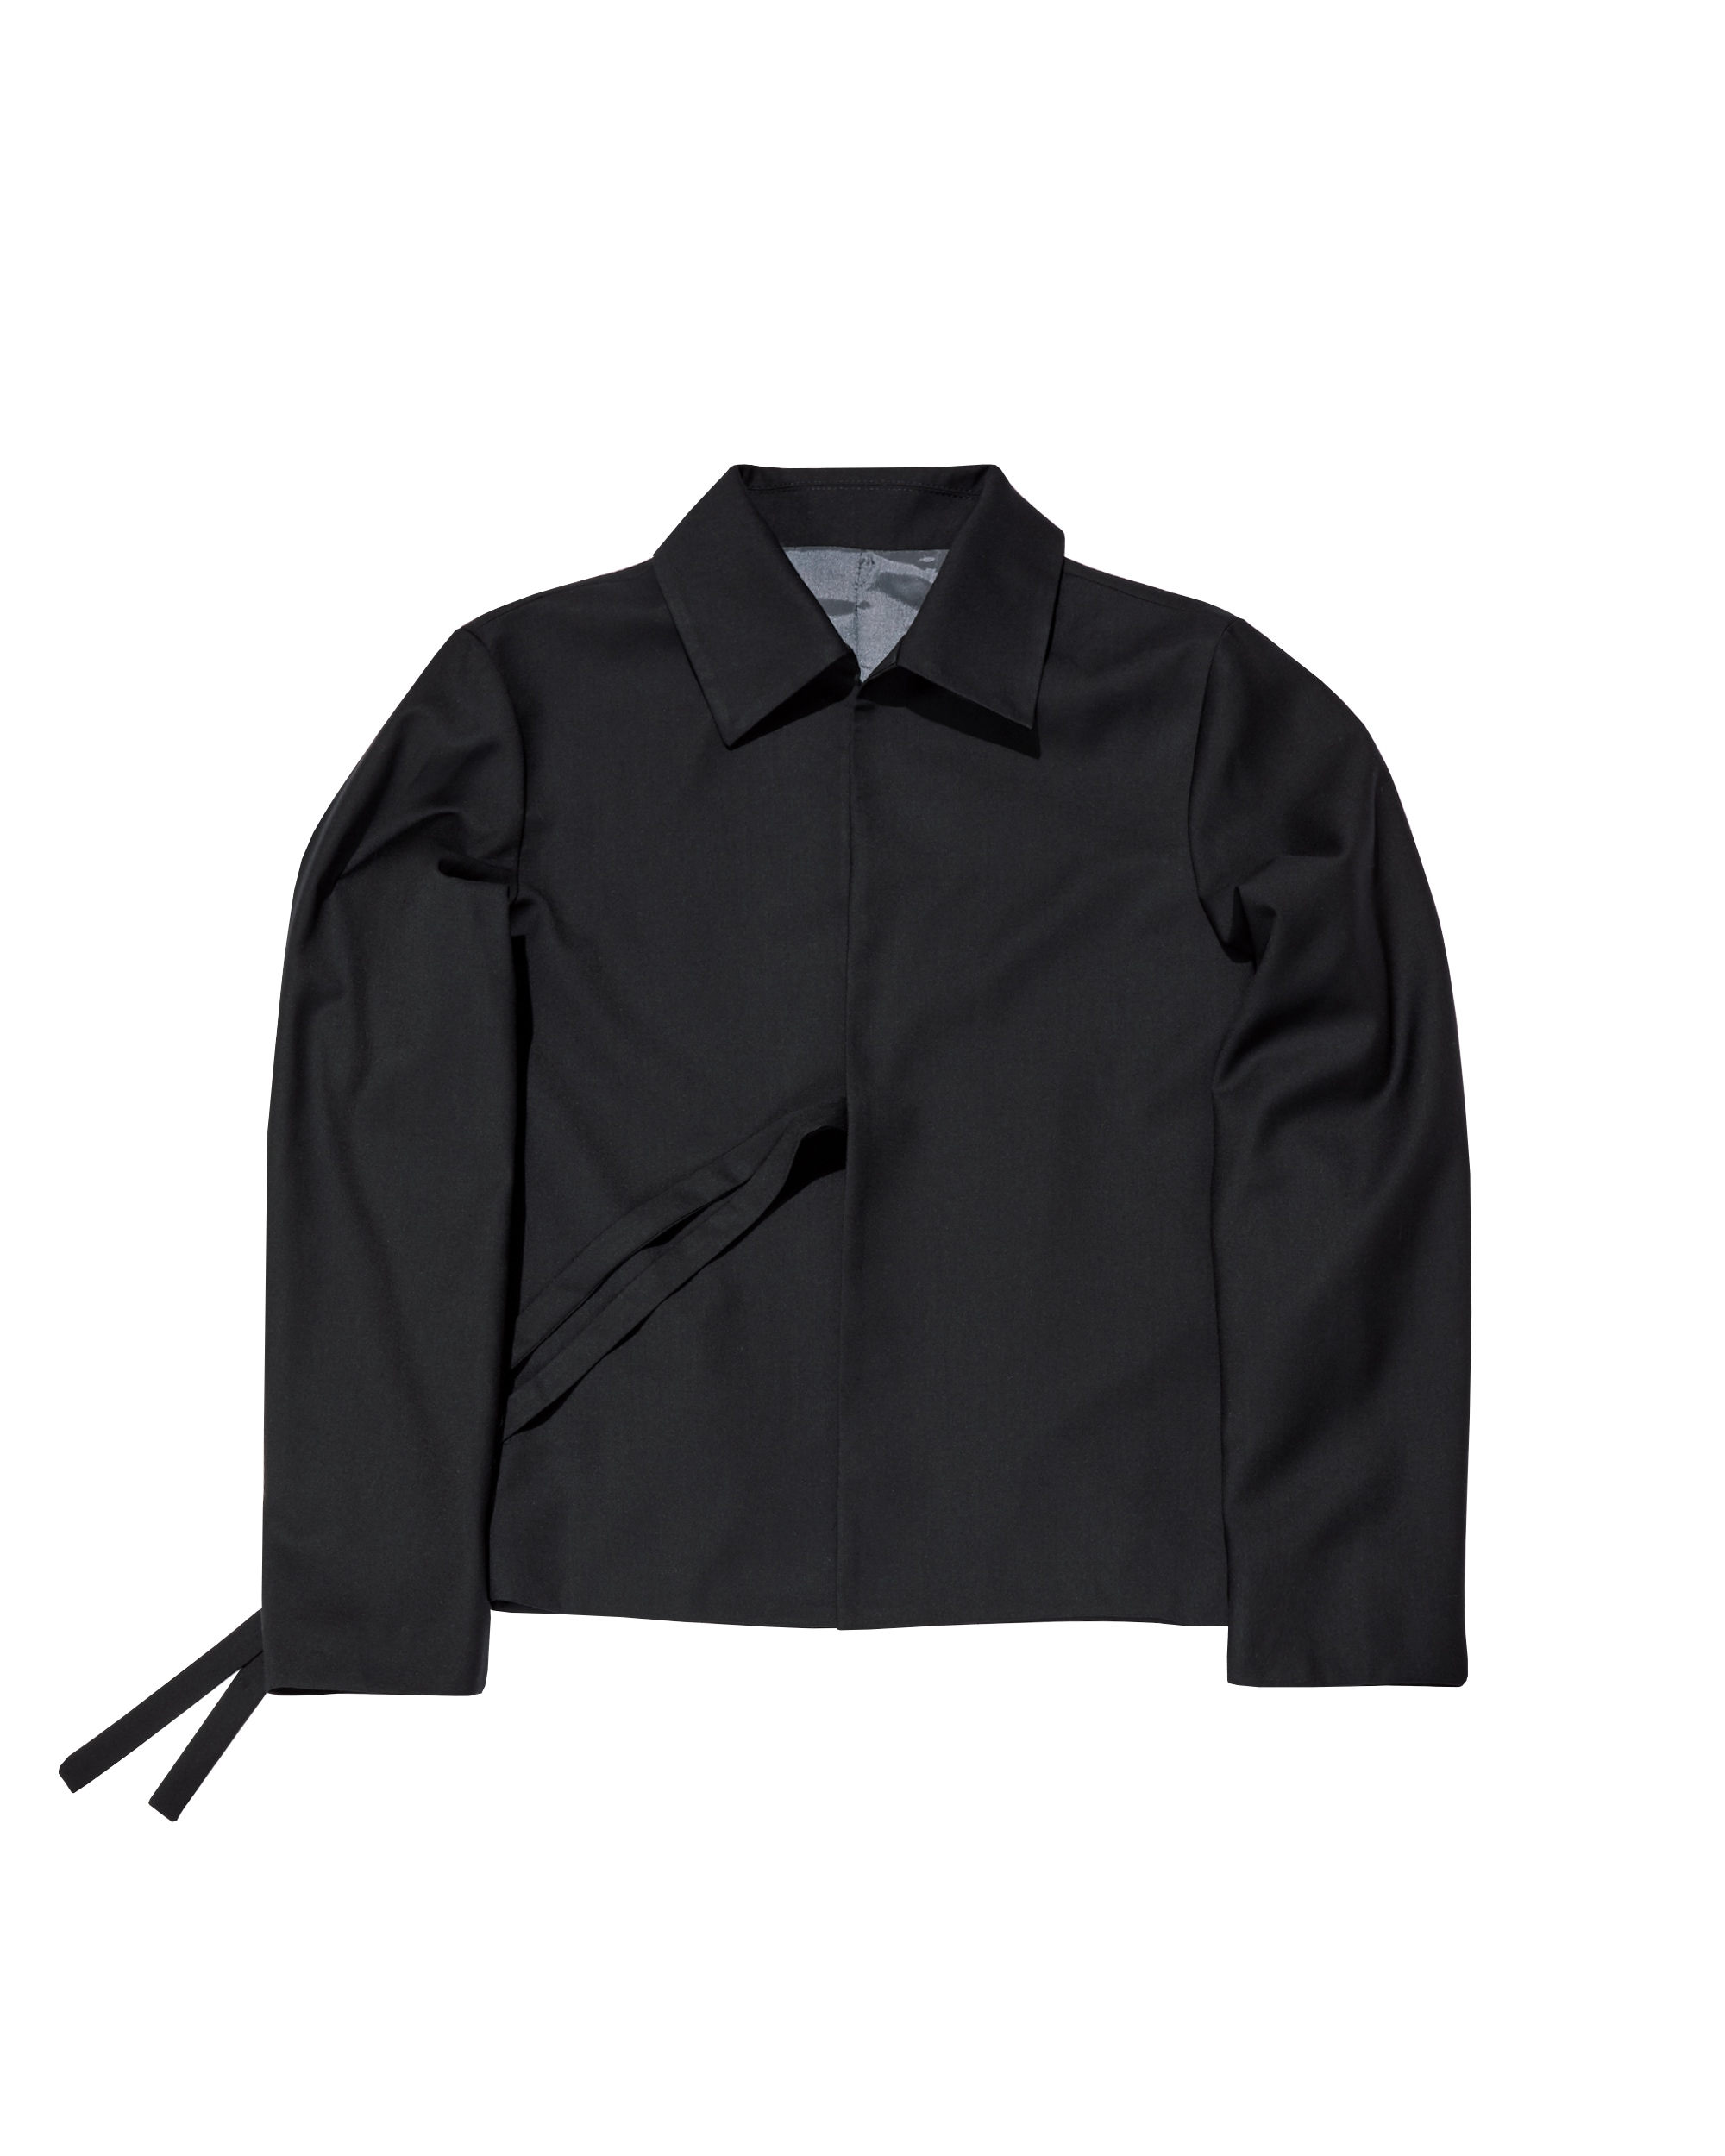 shop-blazer-black-one-dna.jpg